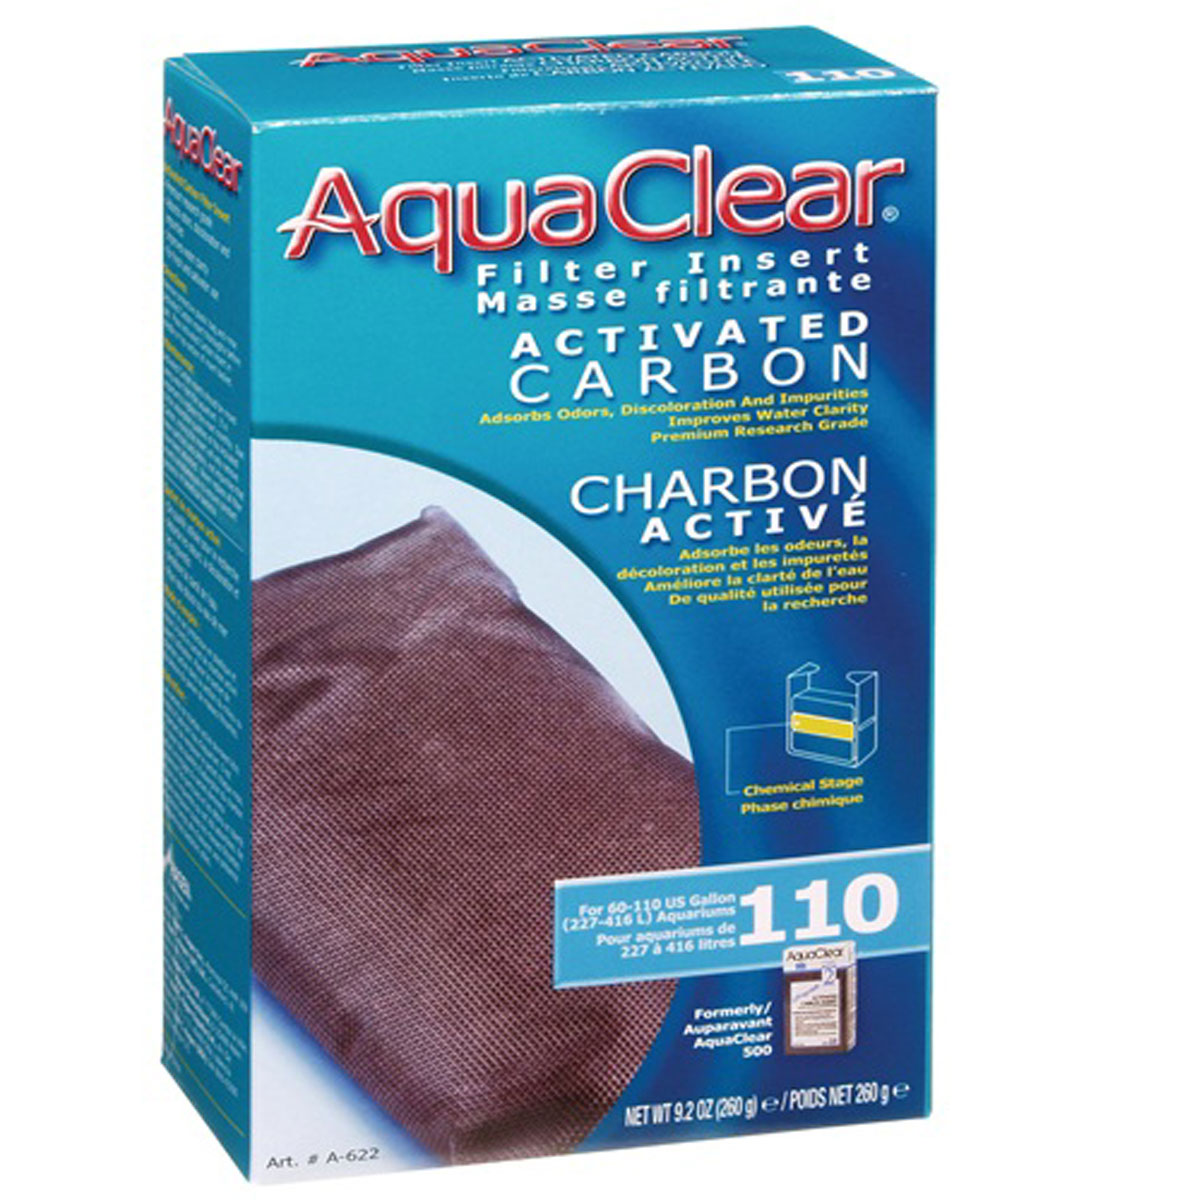 AQUACLEAR 110 REPUESTO CARBON 260 G